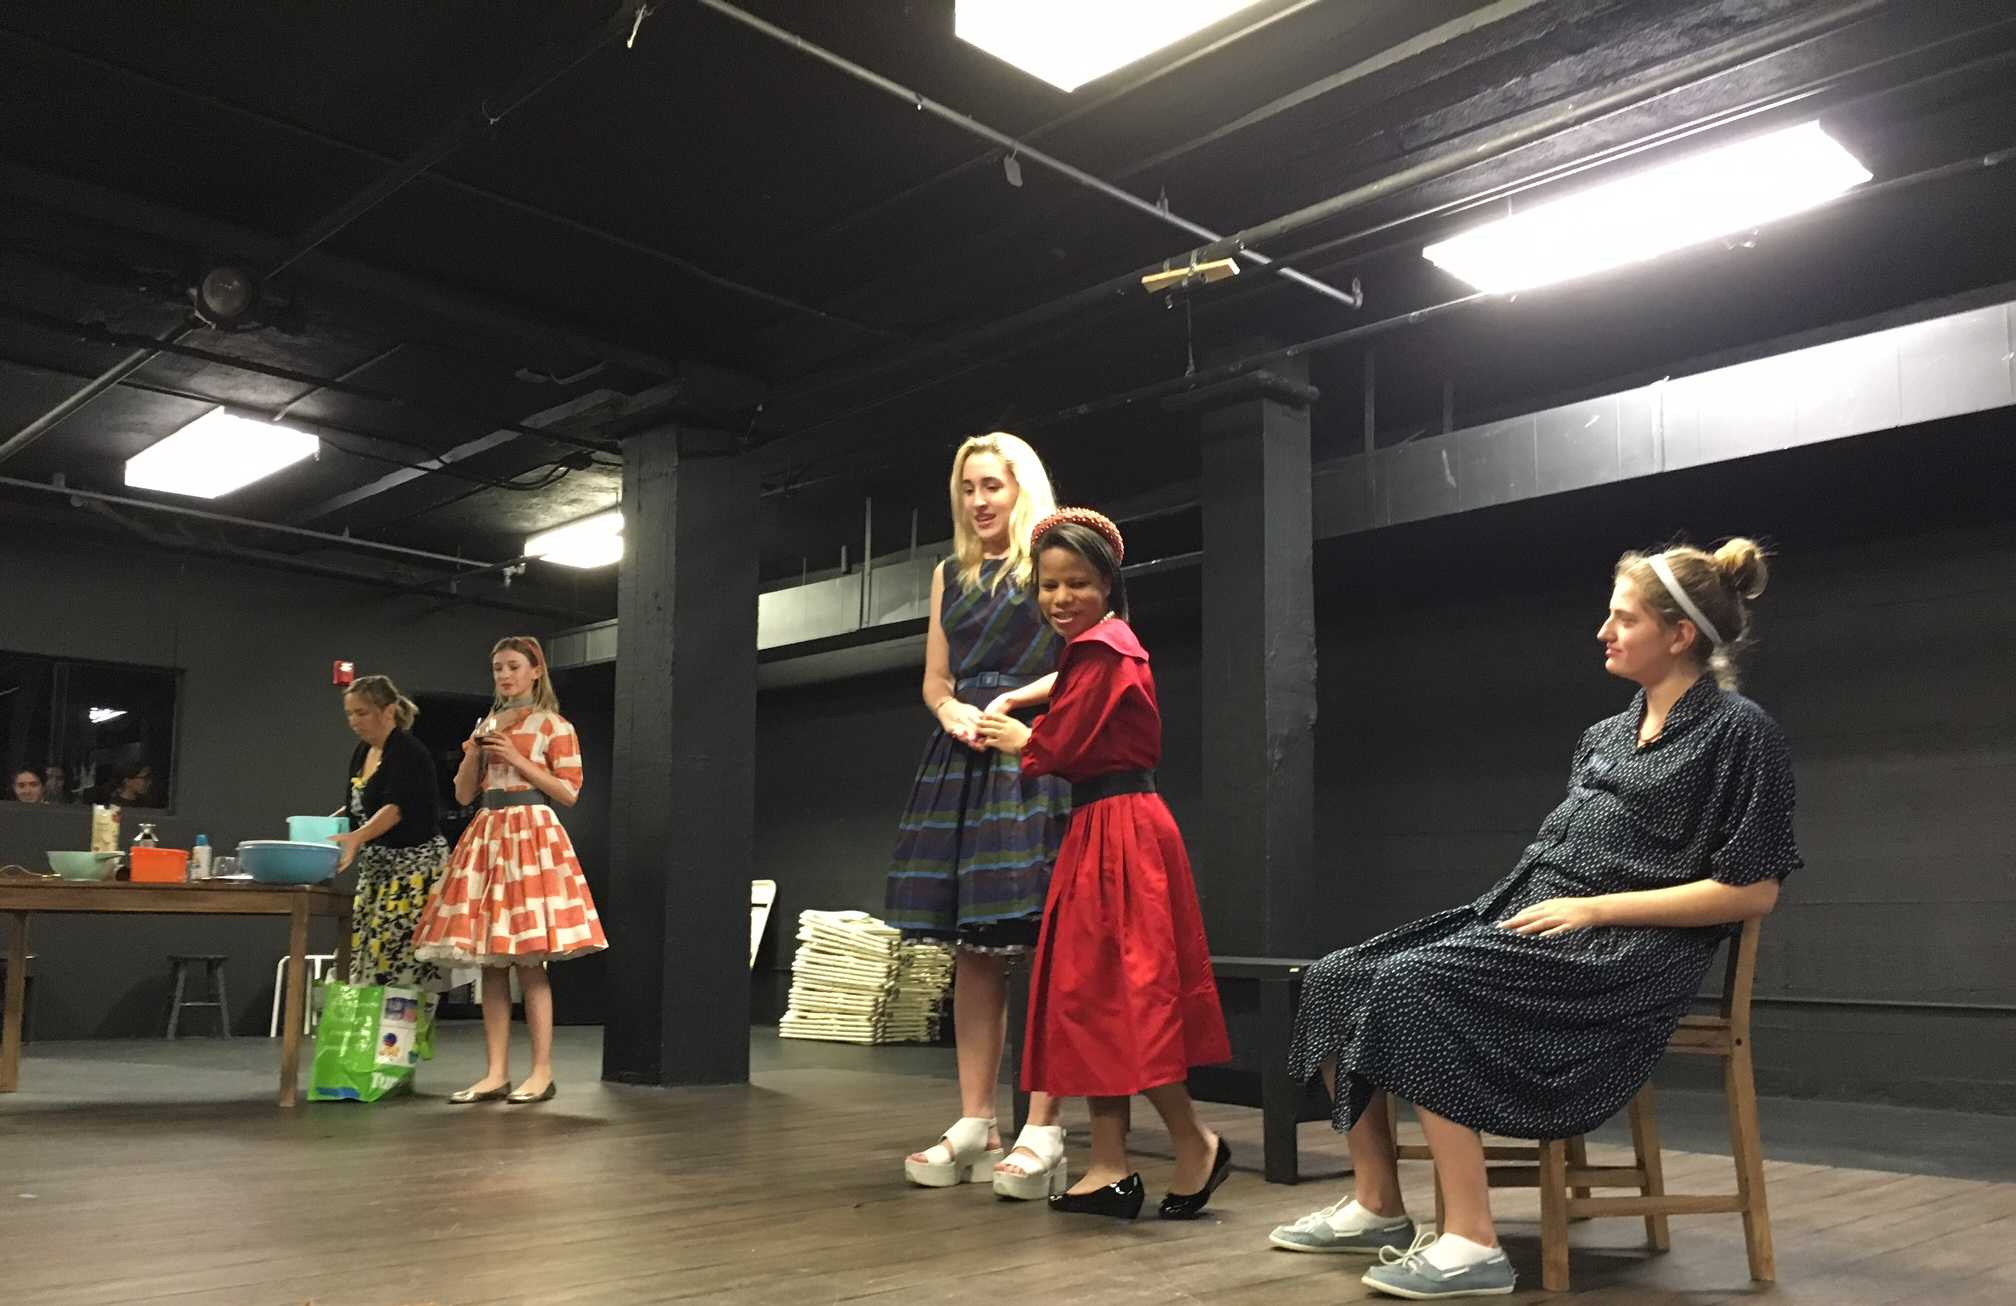 Drama Queens women in '50s comedy performance with special guest star Samantha Coyne. From right to left: Sara Friedman '18, Jayla Brown '18, Harley Smith '17, Uma Halsted '18, and Ms. Coyne.